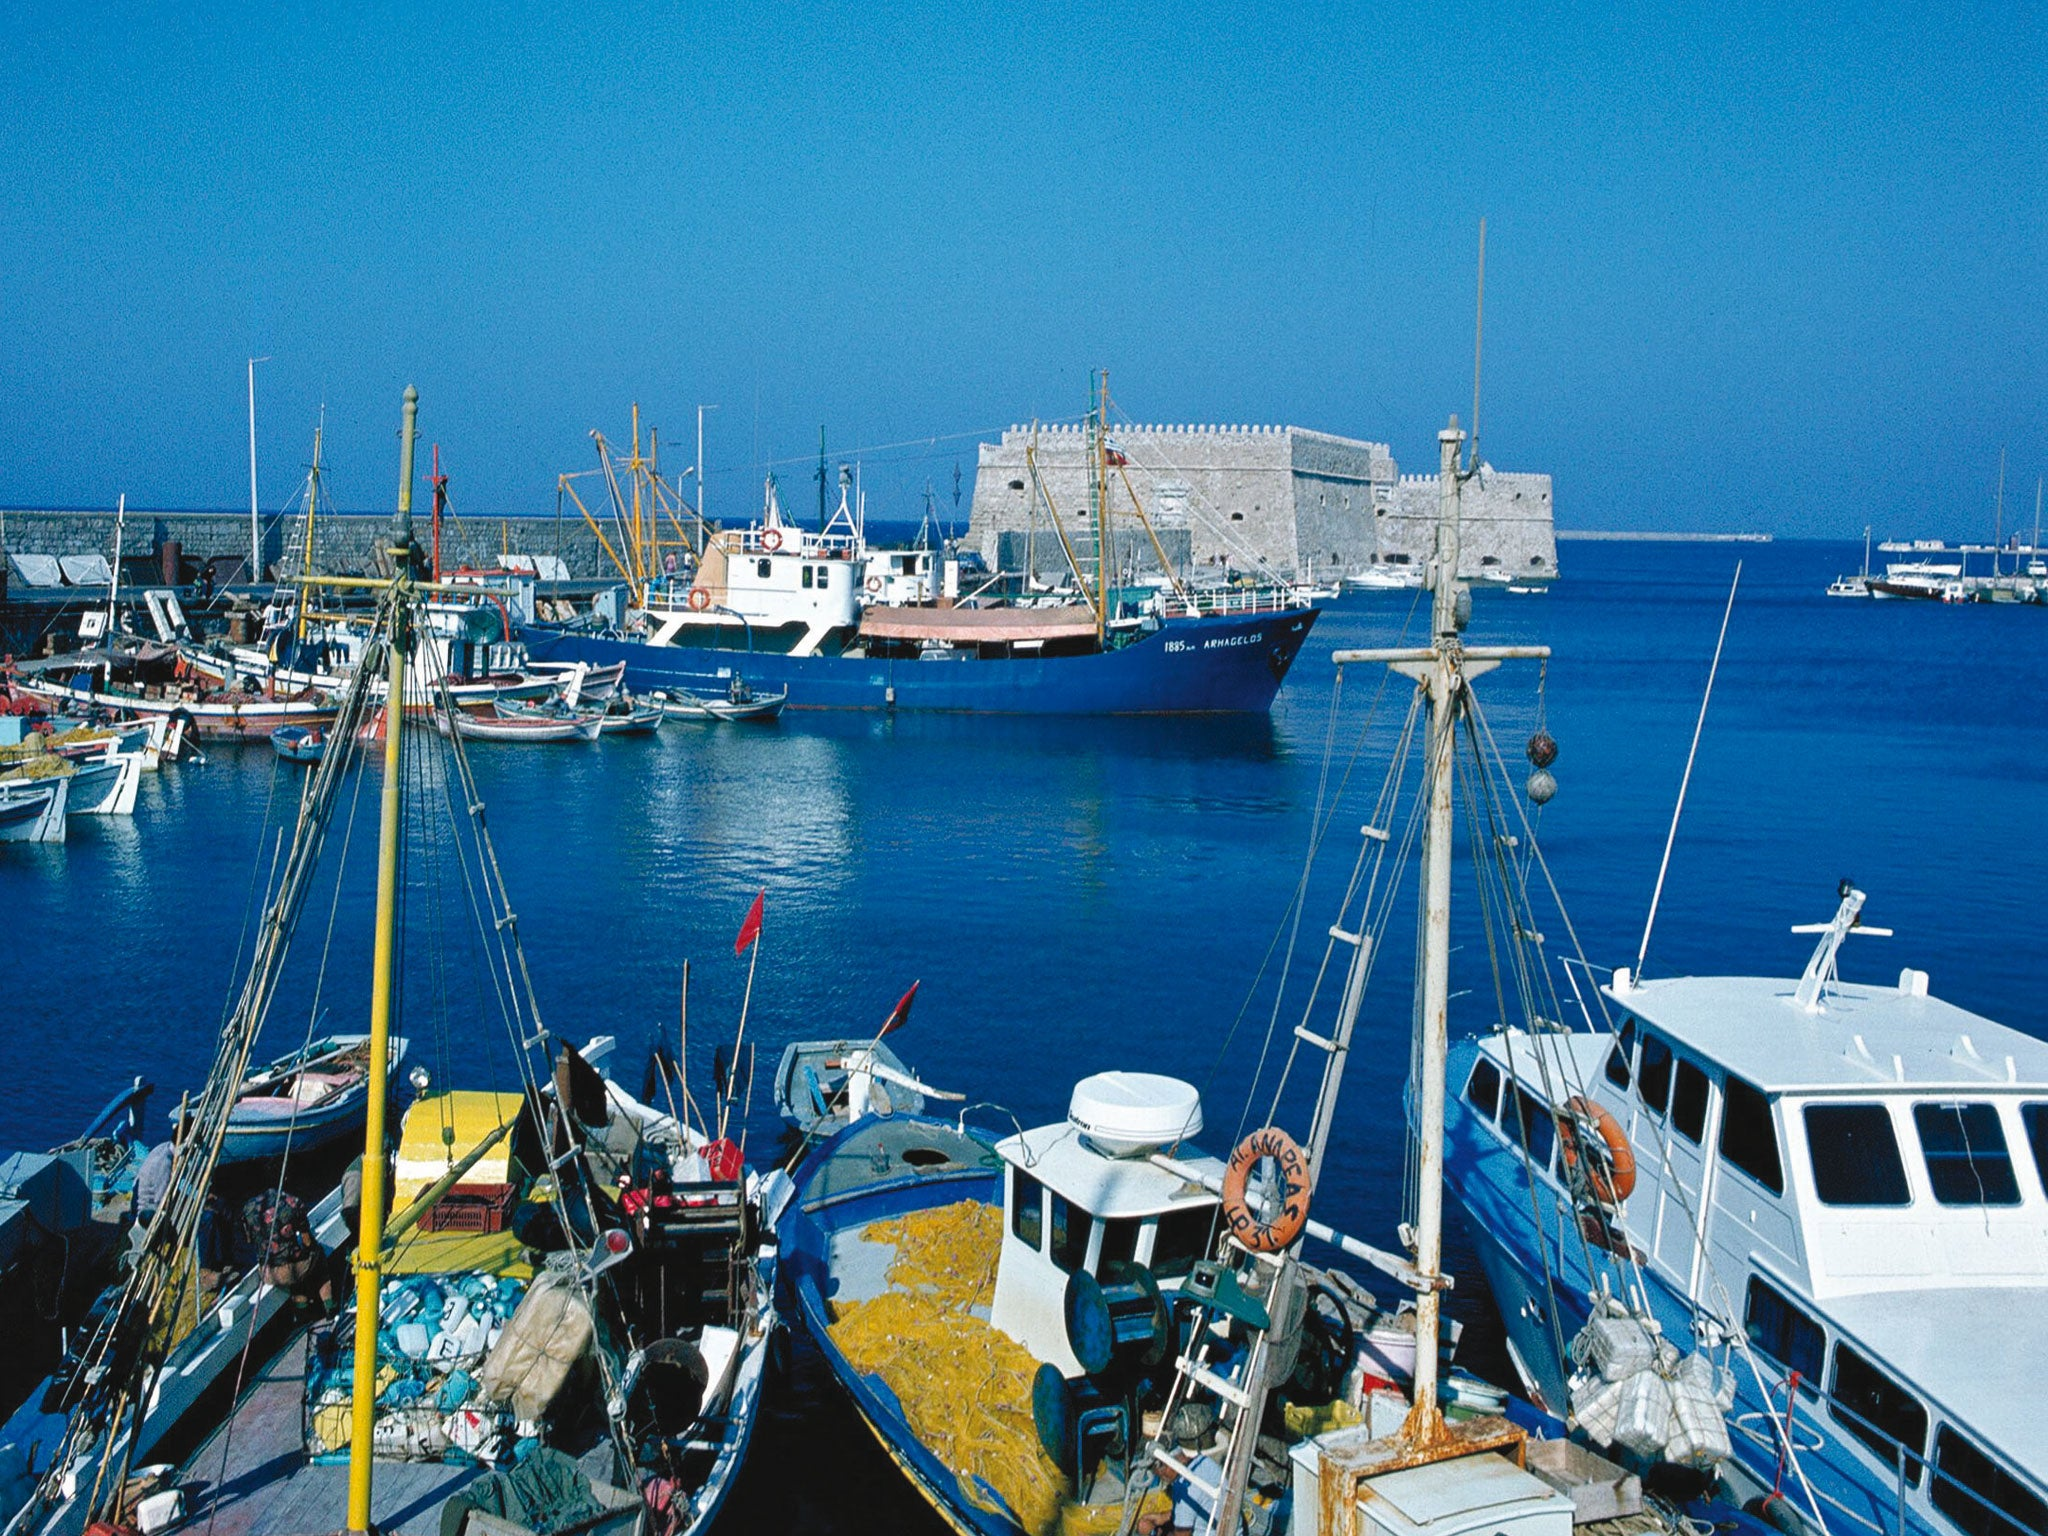 Crete: 'We could be a family two centuries ago ... apart from the fridge'